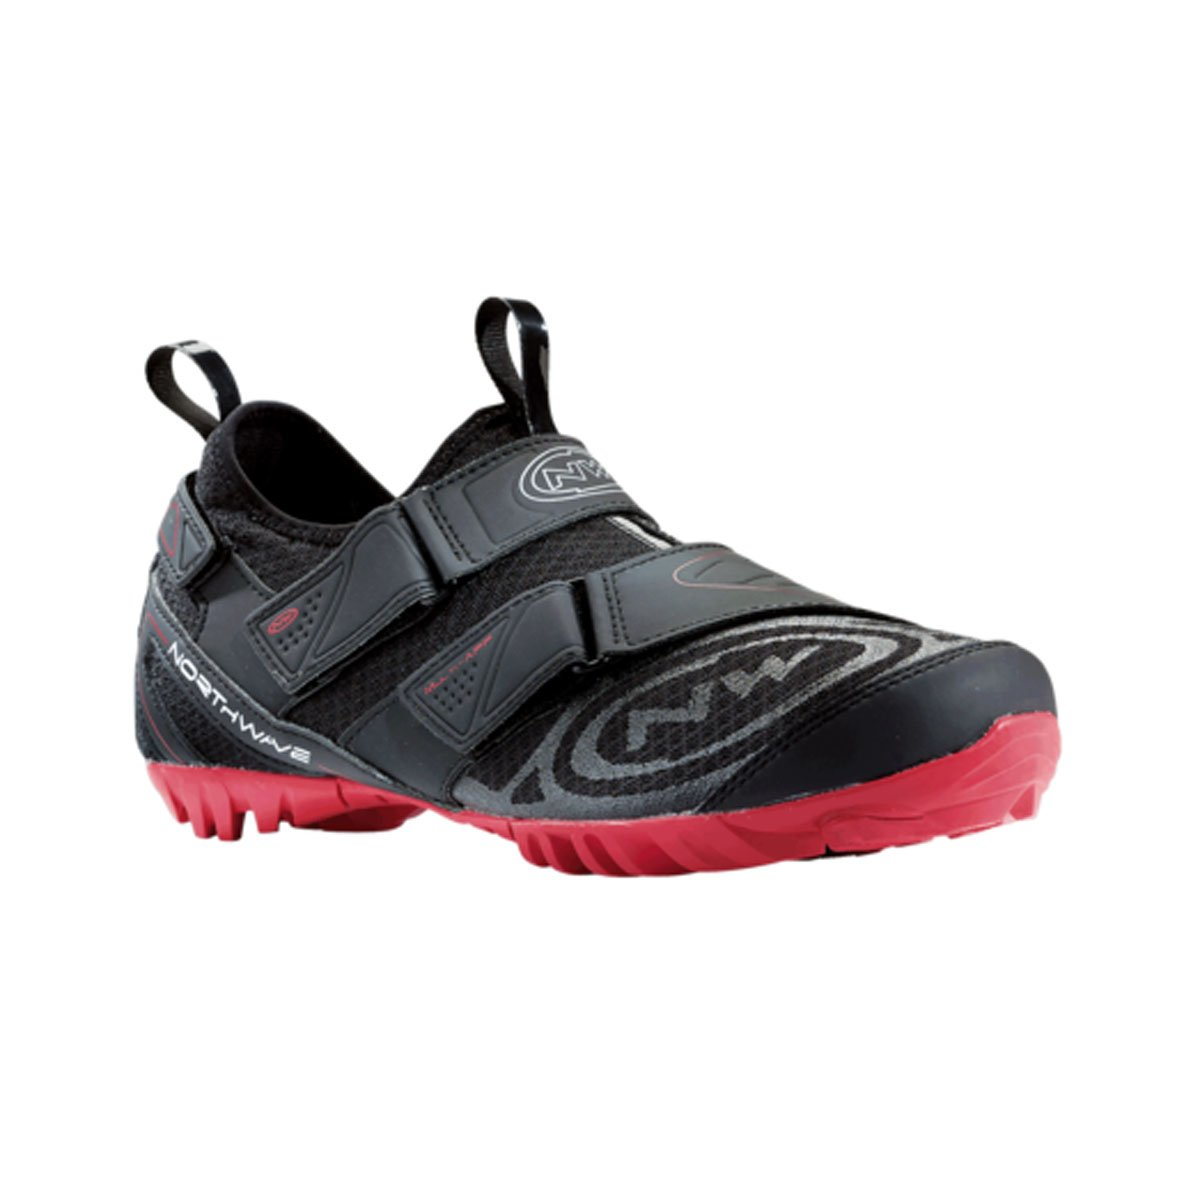 Top 5 Best Indoor Cycling Shoes SPD That Cannot Be Ignored